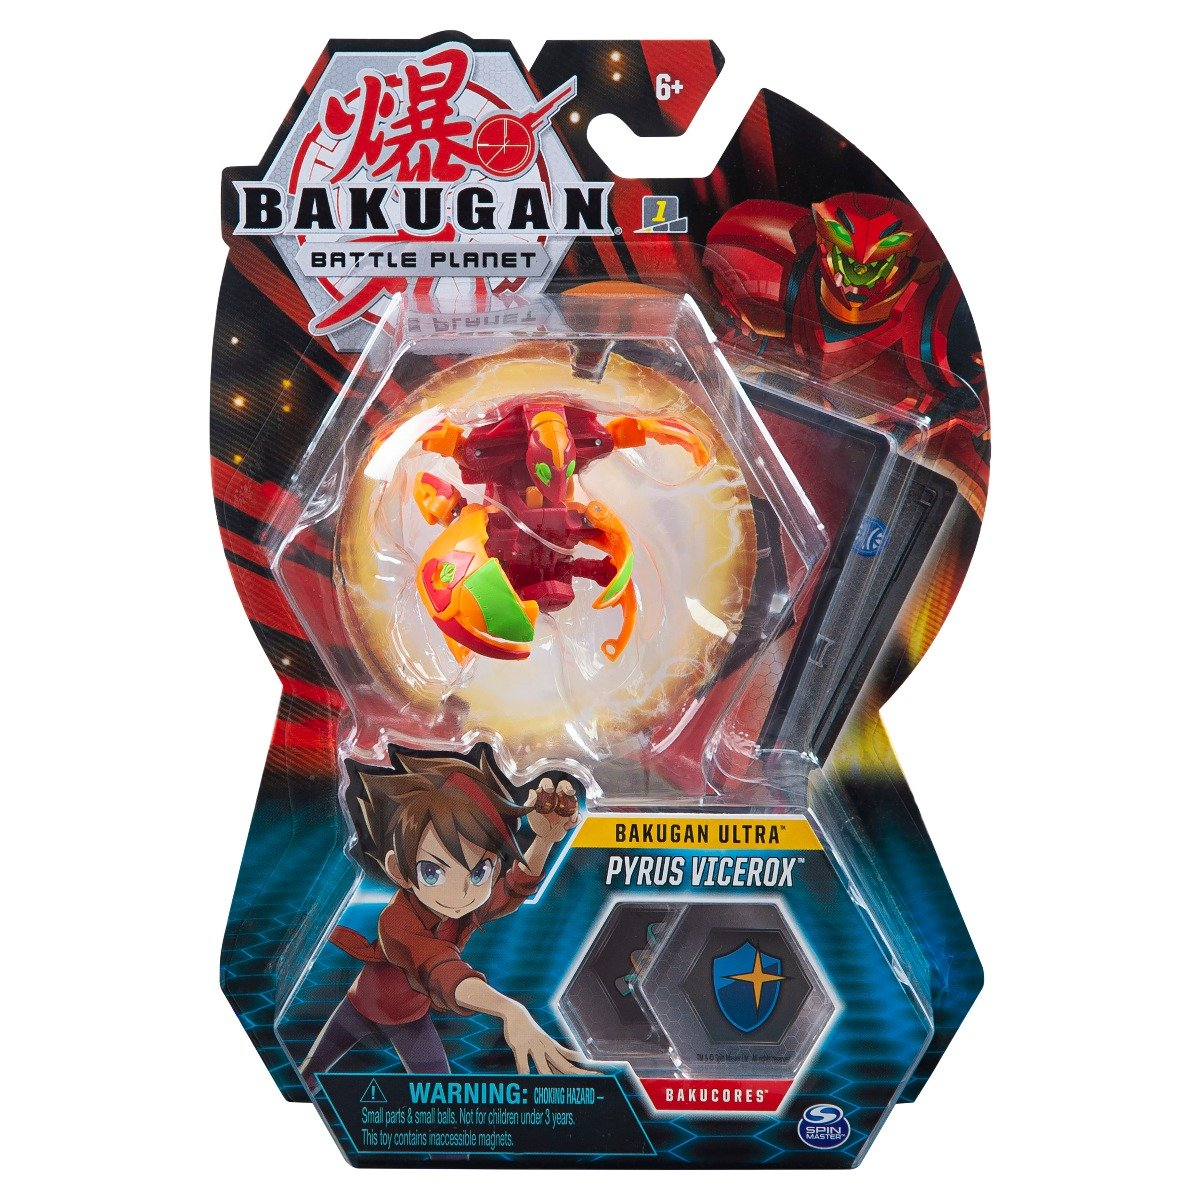 Figurina Bakugan Ultra Battle Planet, Pyrus Vicerox, 20118138